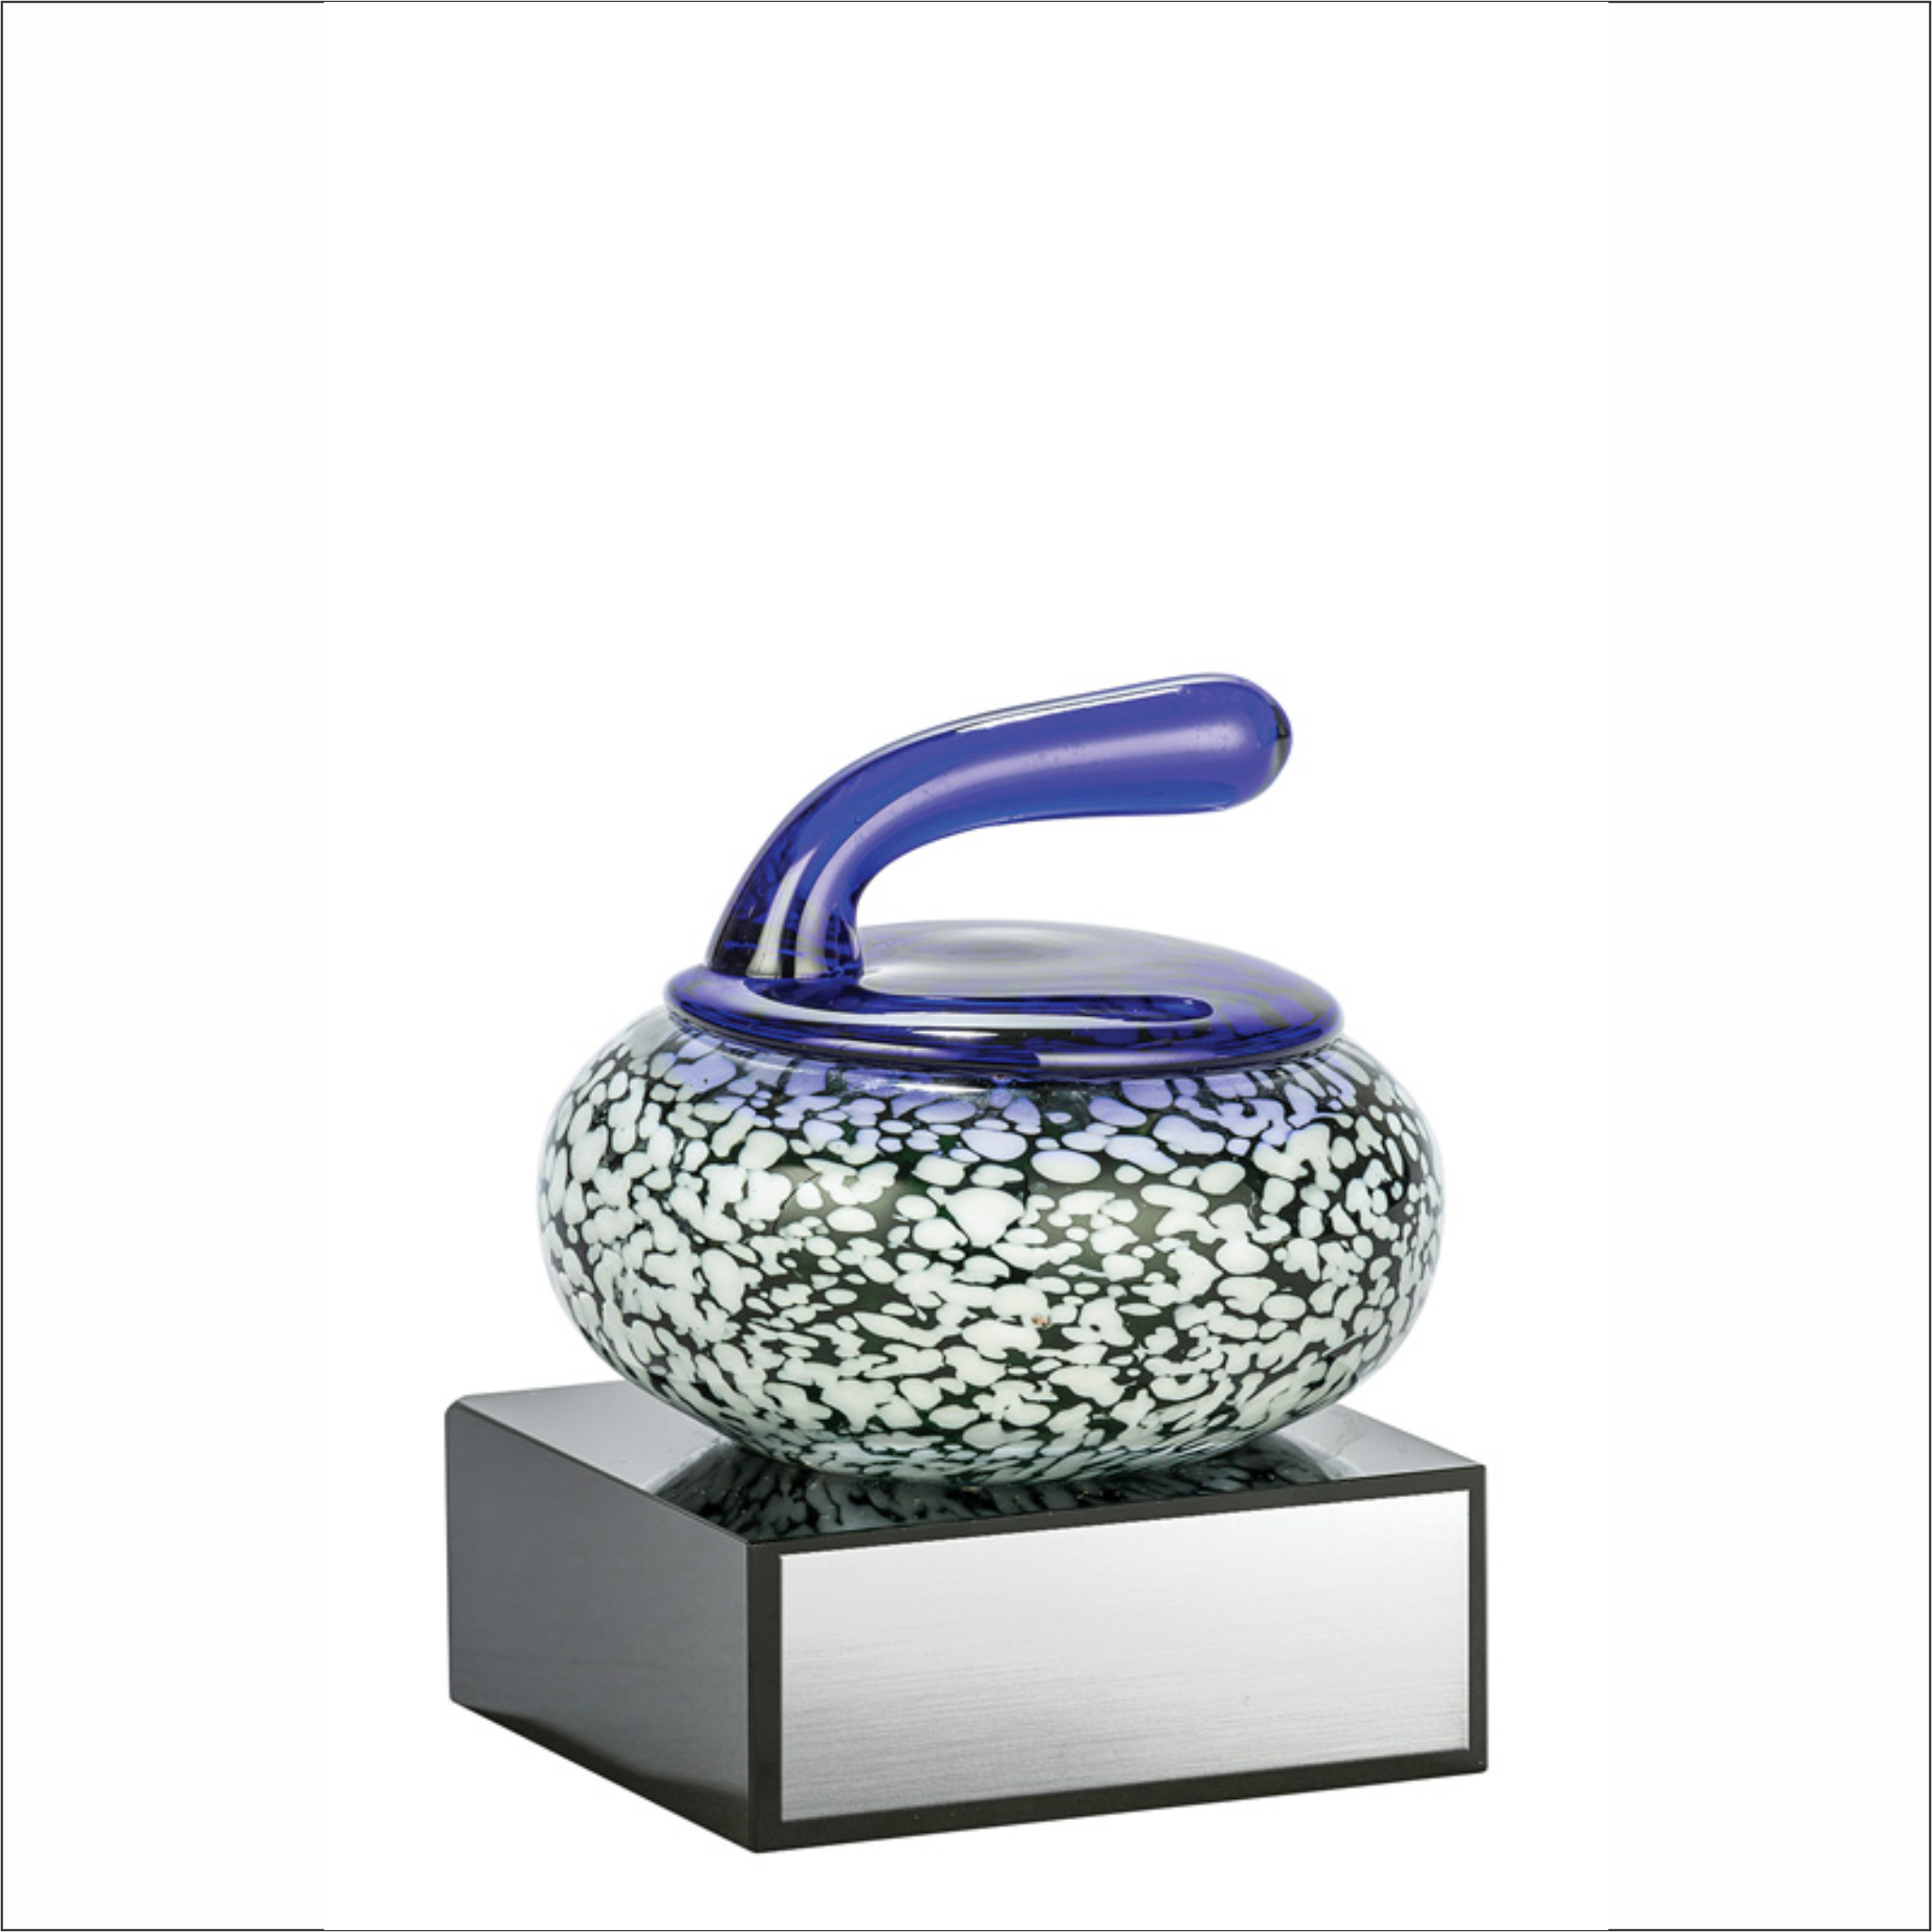 "Curling Stone - 4⅜"" - Art Glass Award"